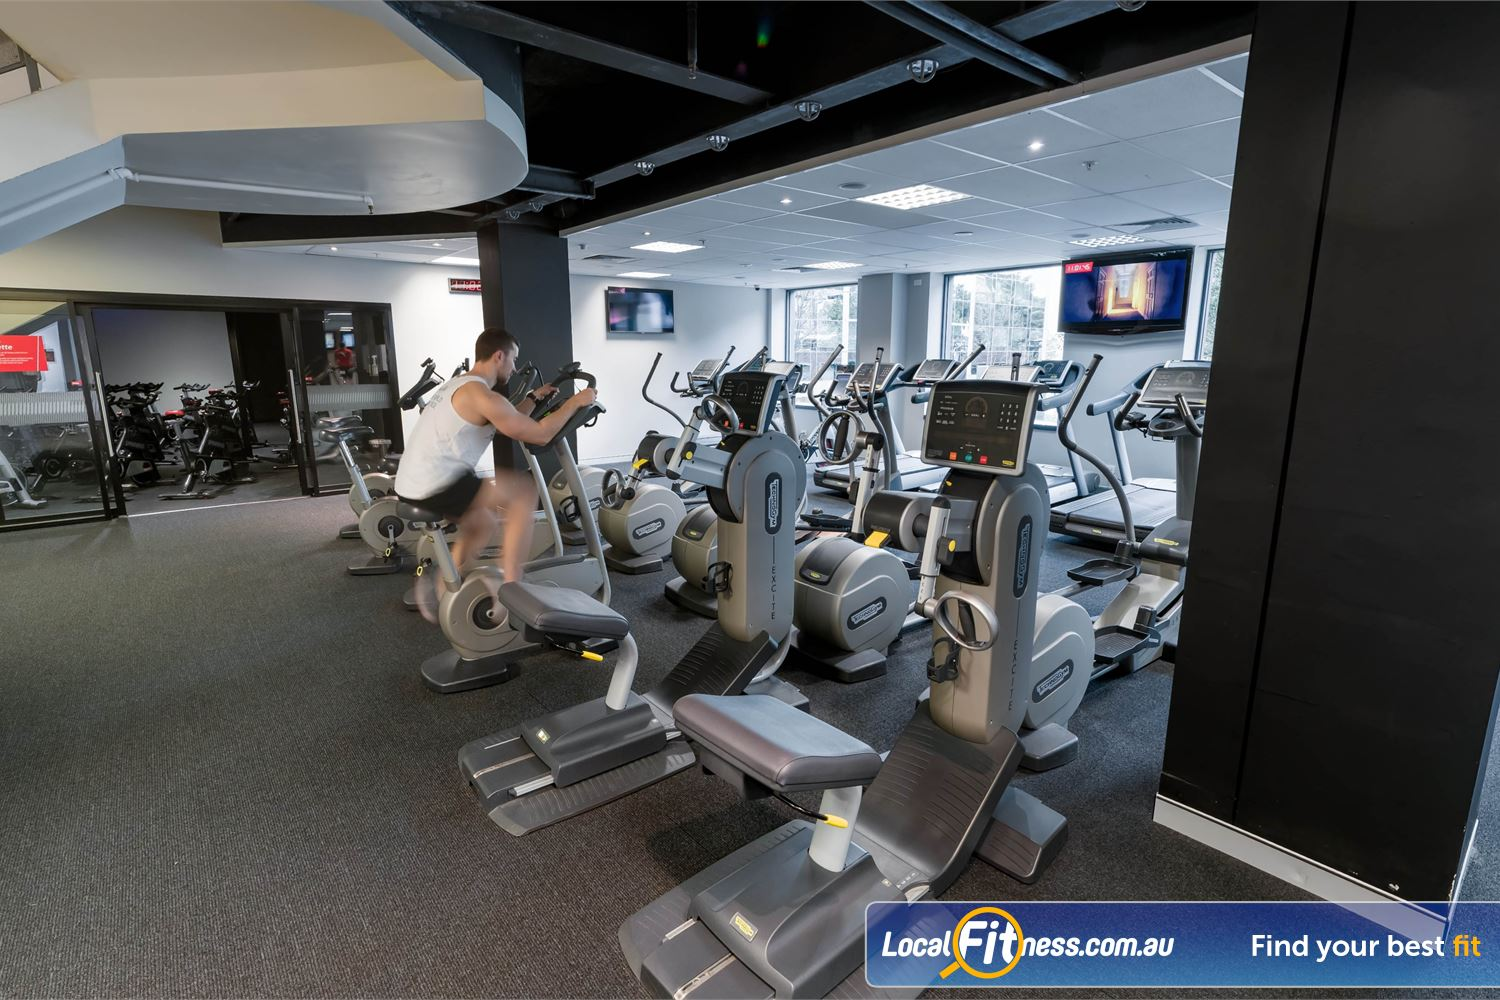 Fitness First Elizabeth Plaza North Sydney Our cardio area includes treadmills, cross trainers, cycle bikes and more.